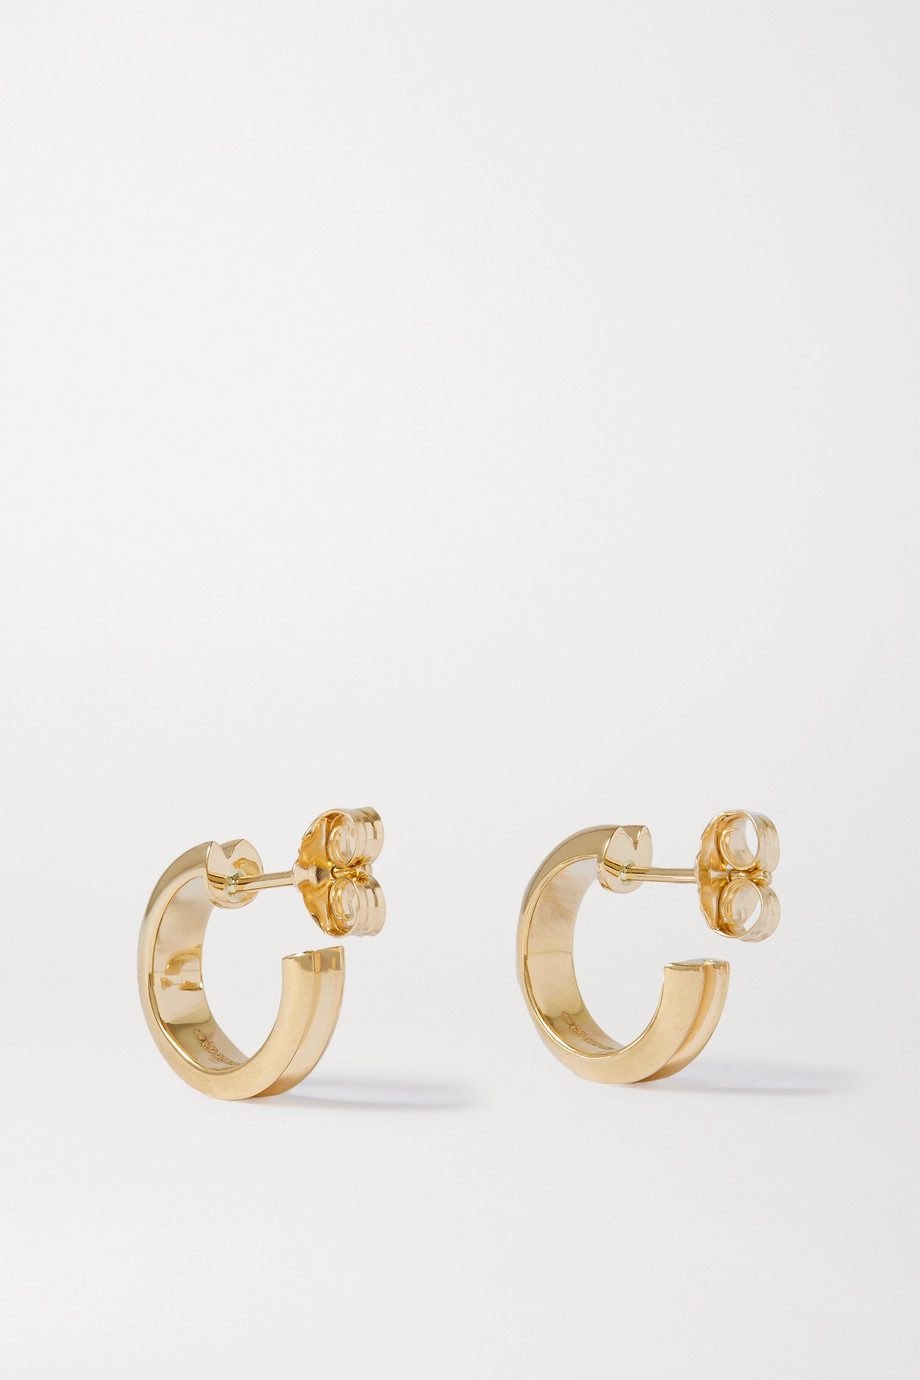 Wwake Narrow Ripple 10-karat gold hoop earrings